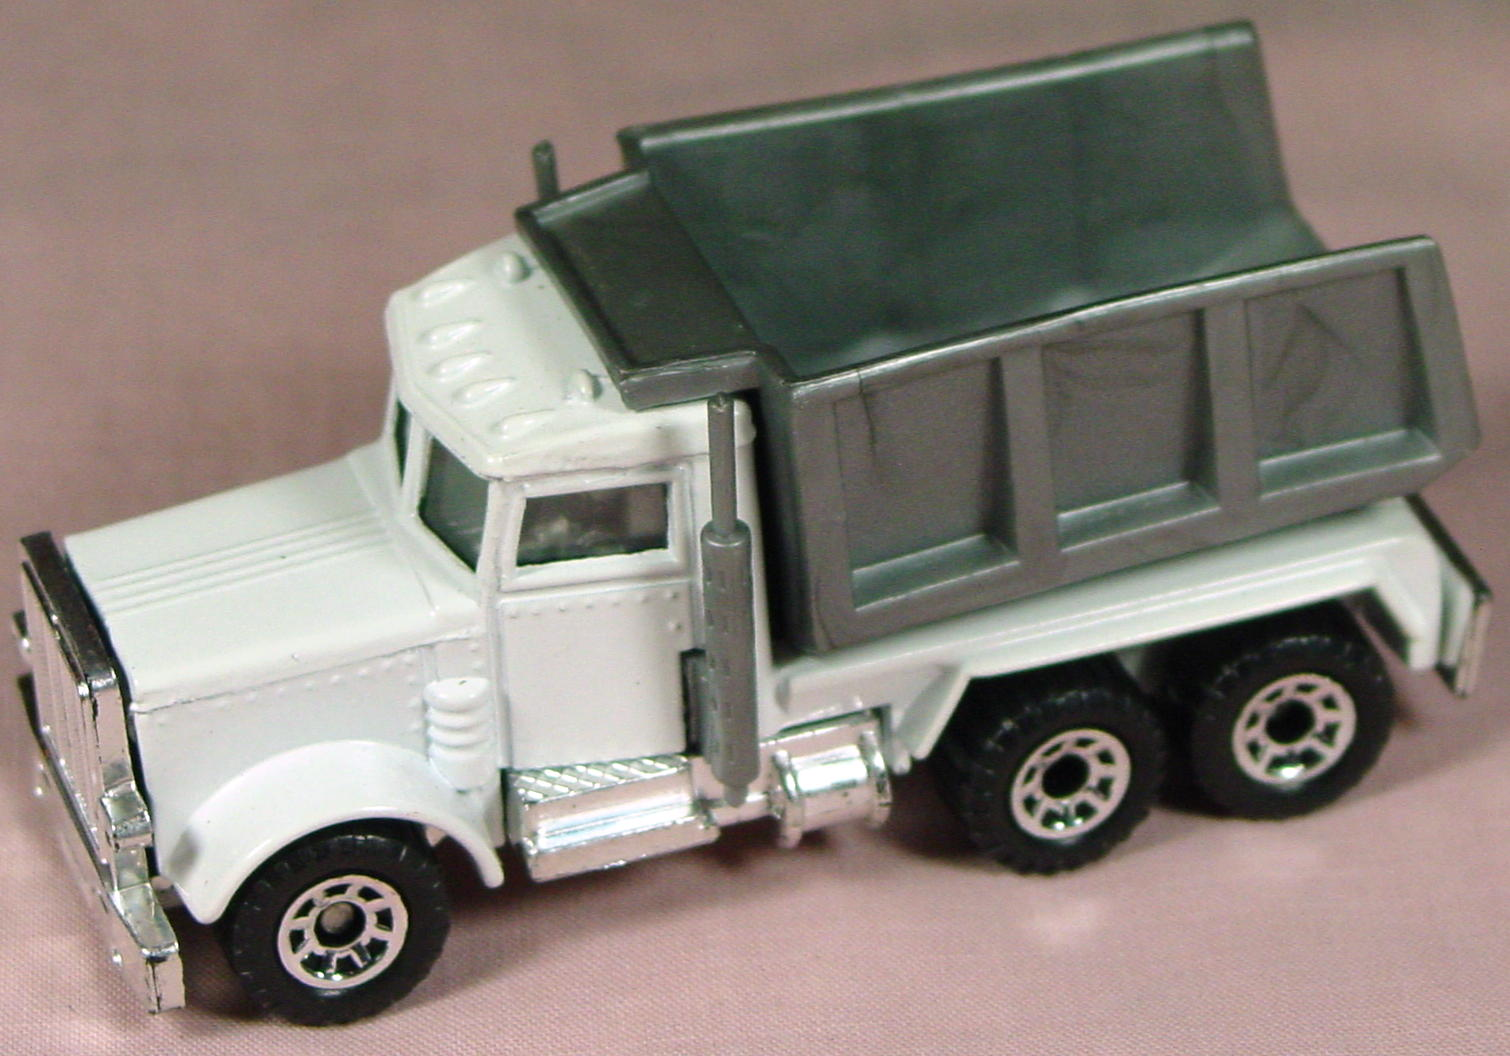 ASAP-CCI 30 E 28 - Peterbilt Quarry White no tampo made in China ASAP blank